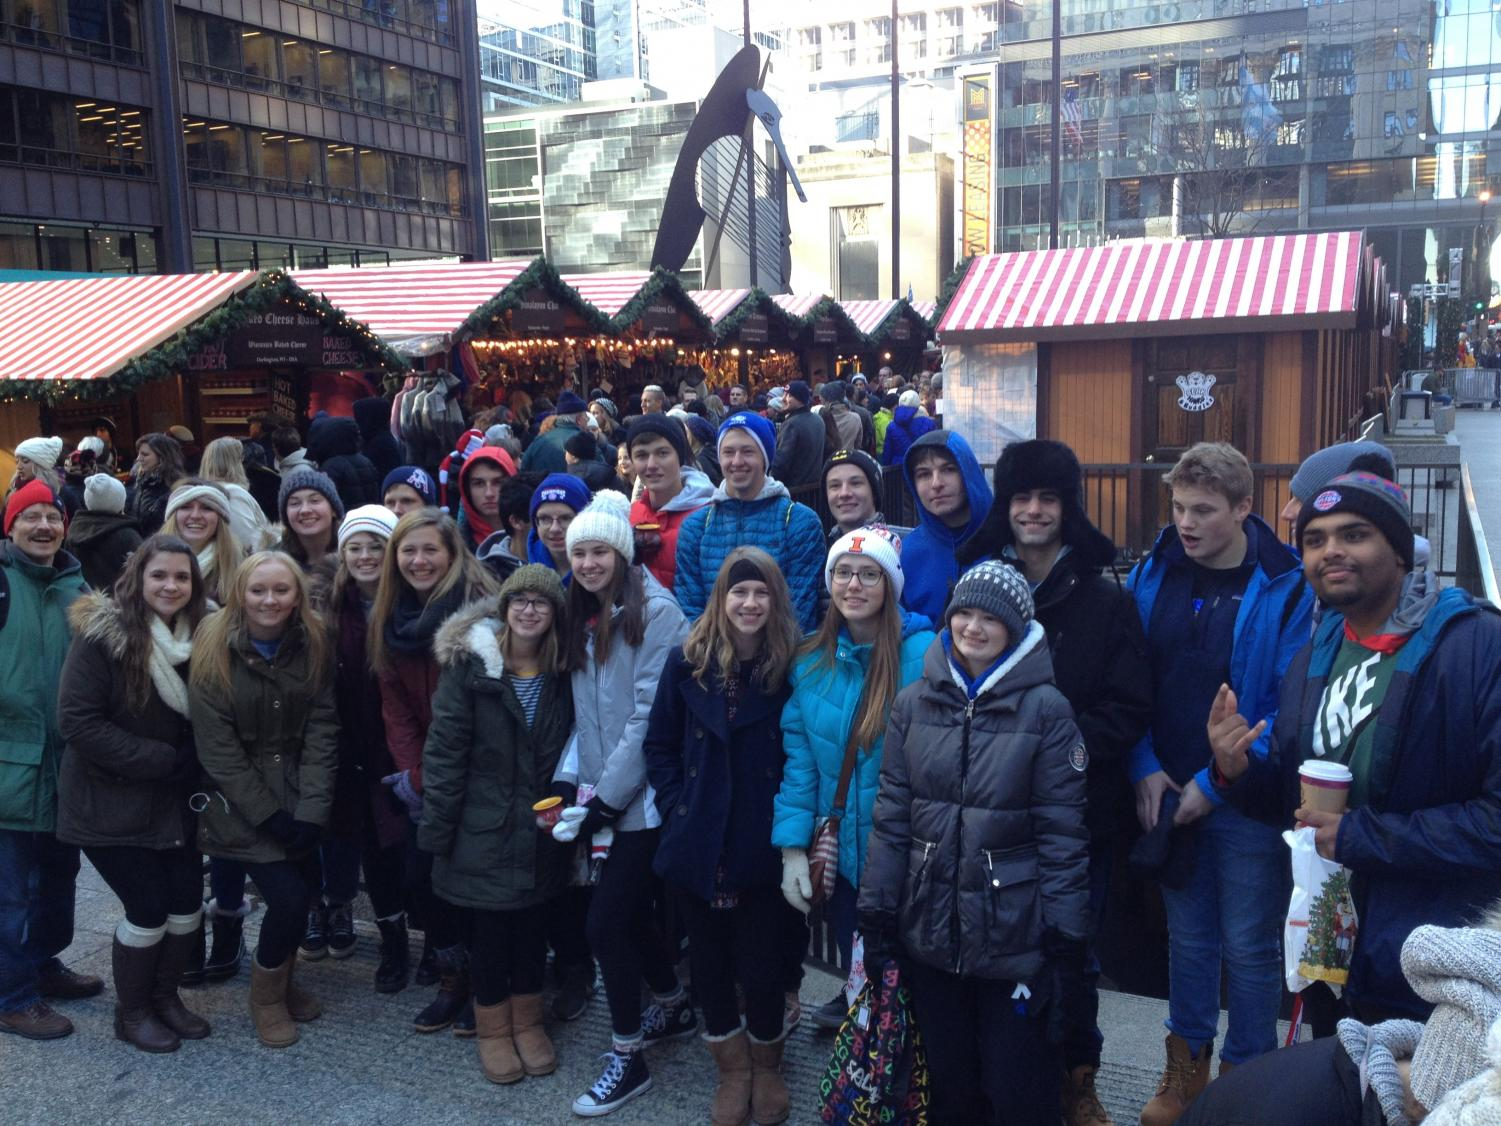 German IV students pose in front of the German market during their Saturday field trip. The trip showed German Christmastime traditions to Lake Zurich students.